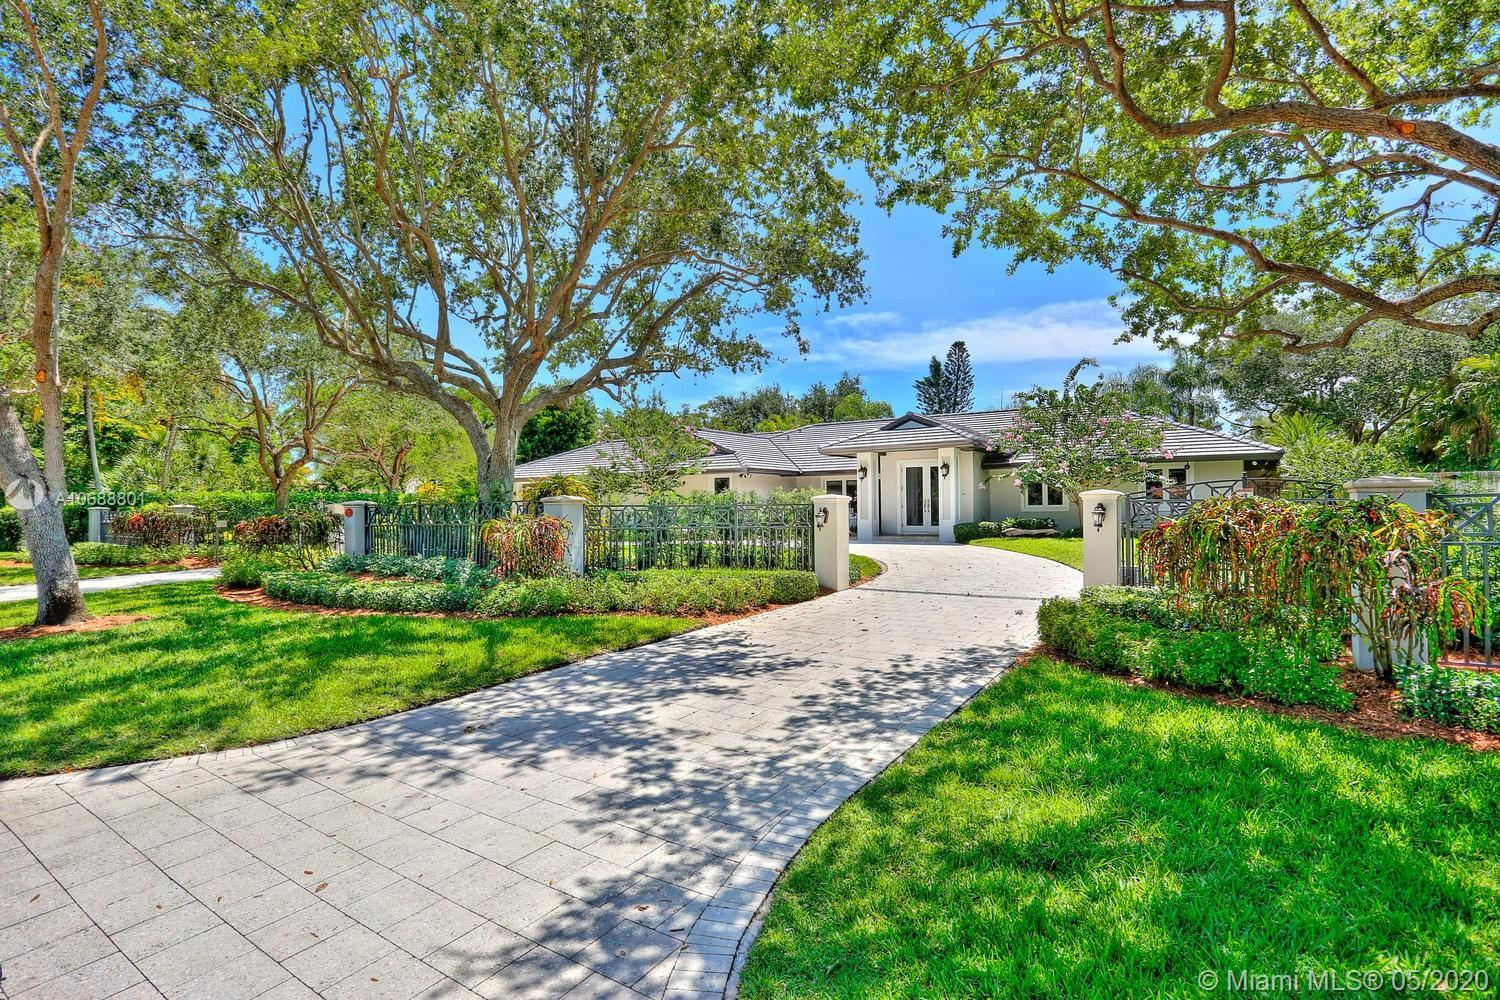 13471 SW 62nd Ave, Pinecrest, FL 33156 - #: A10688801